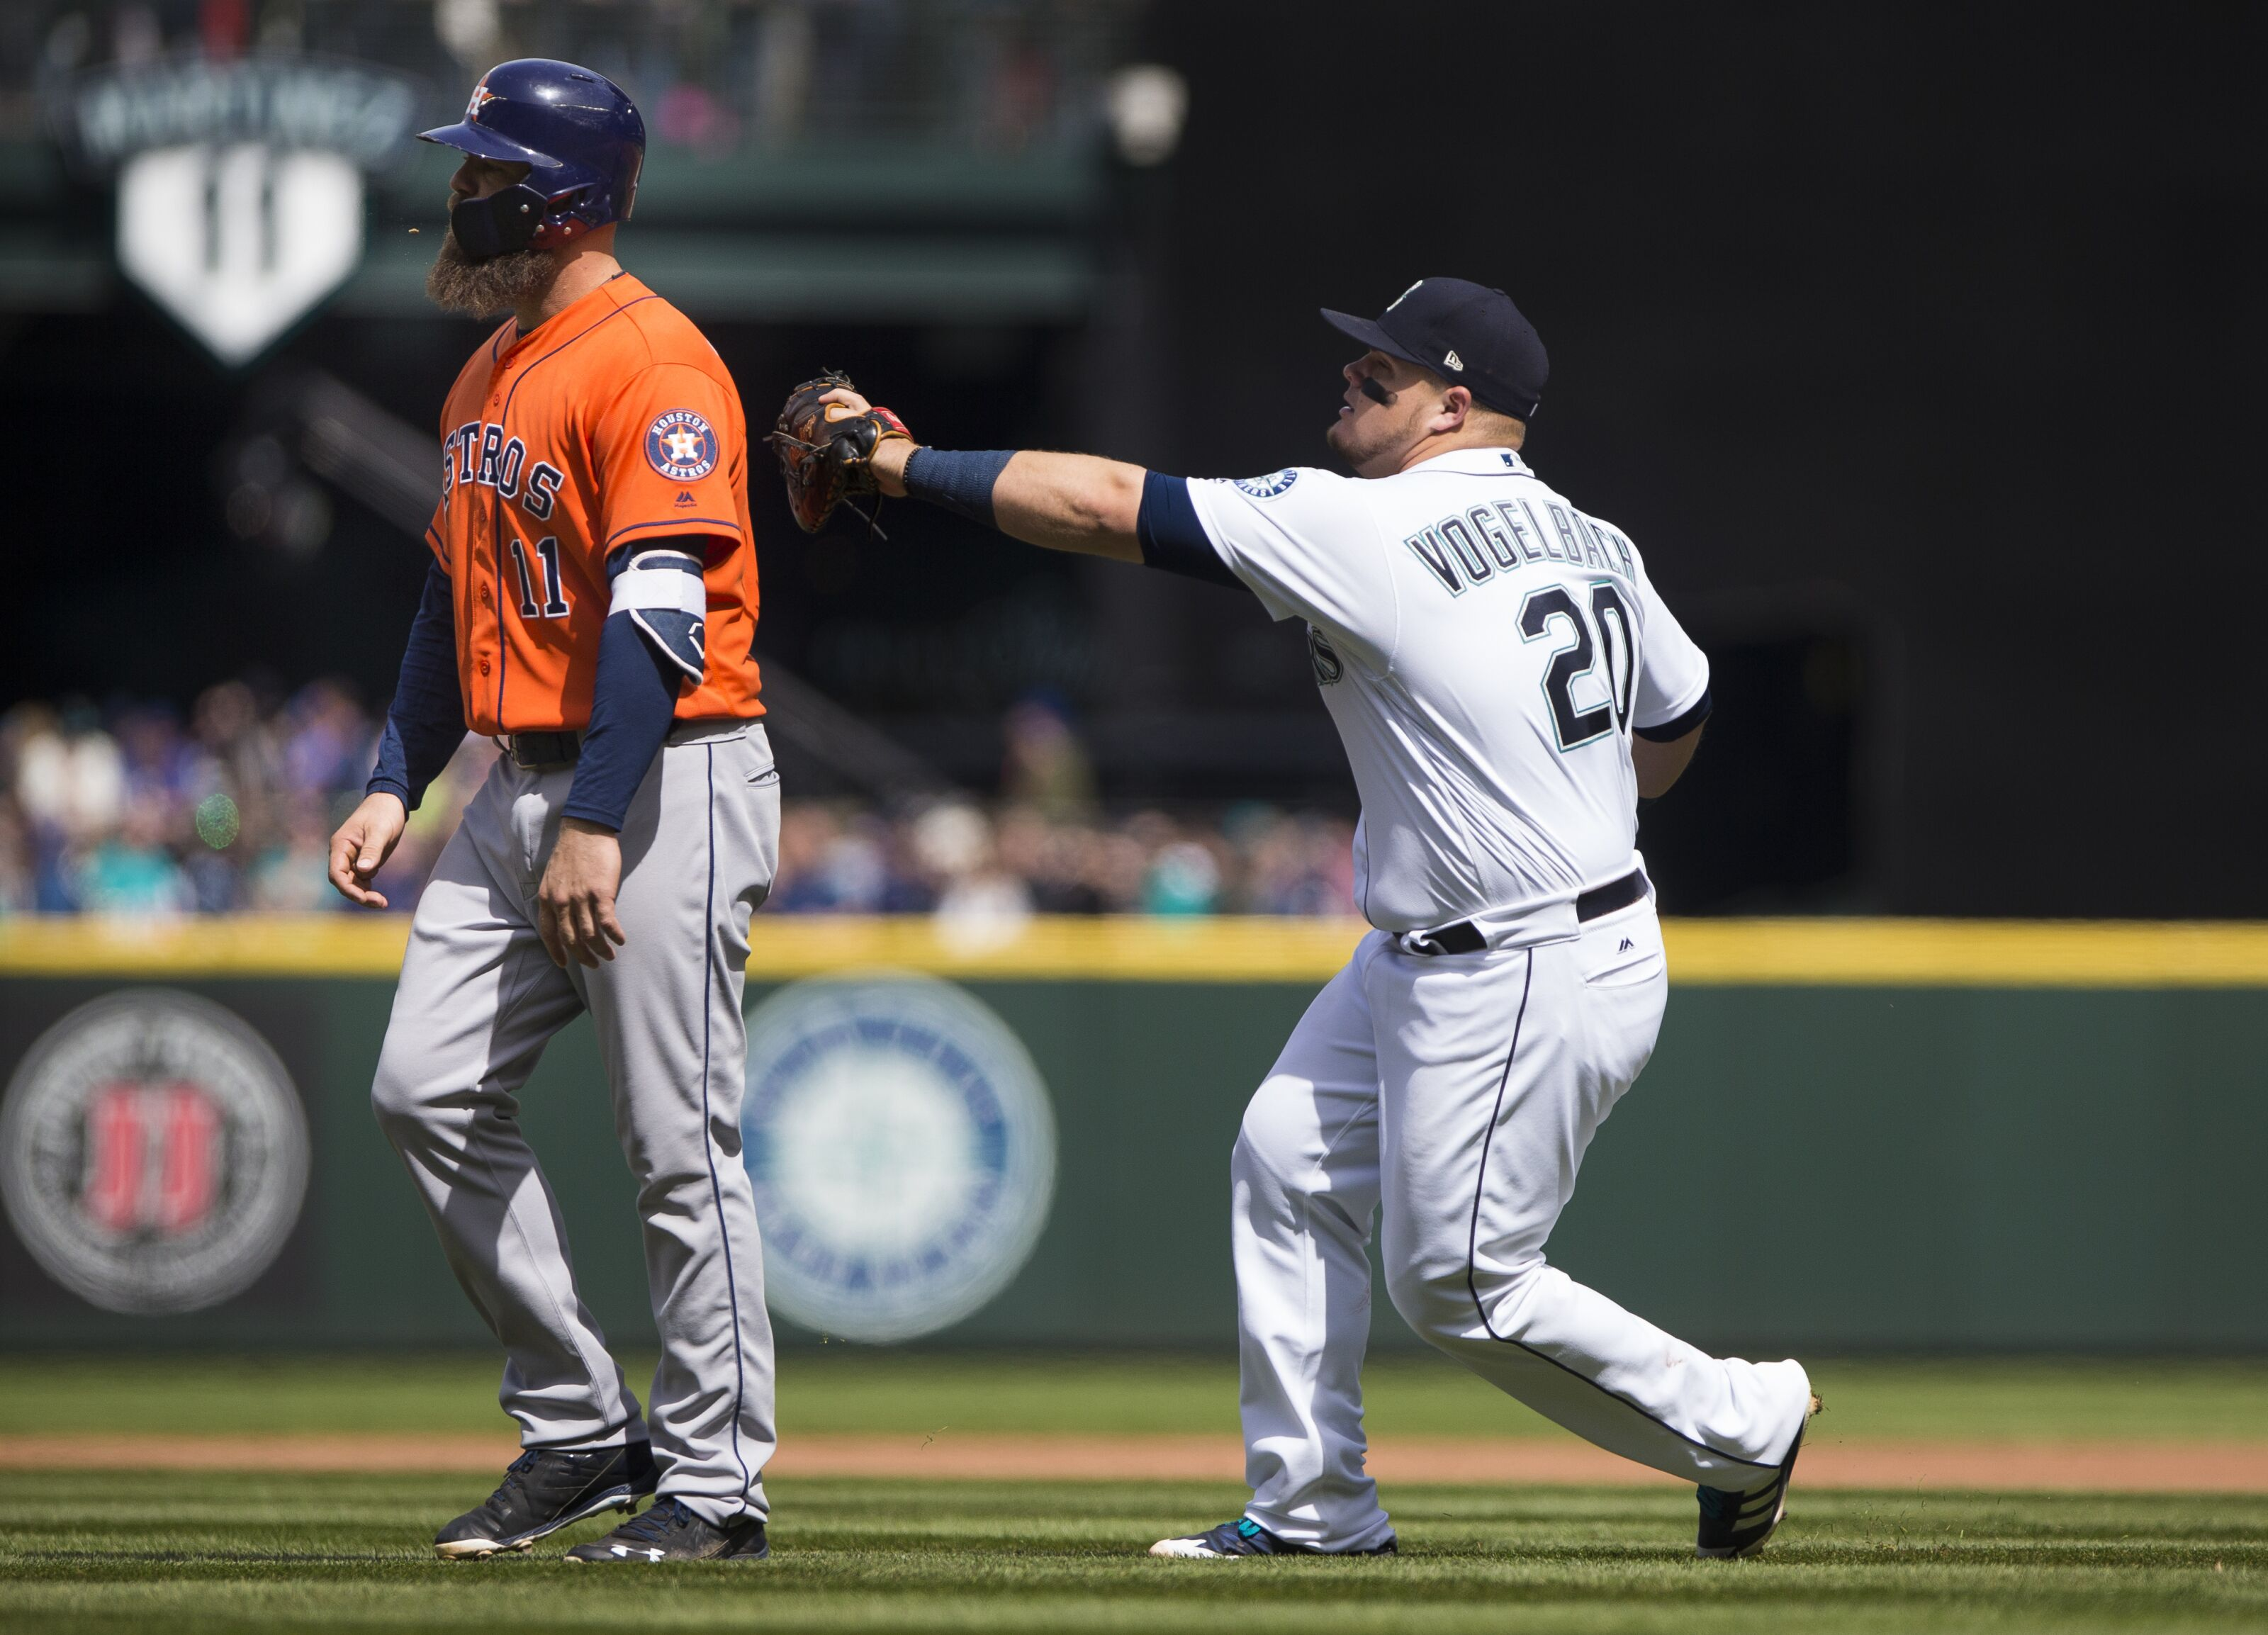 948820298-houston-astros-v-seattle-mariners.jpg